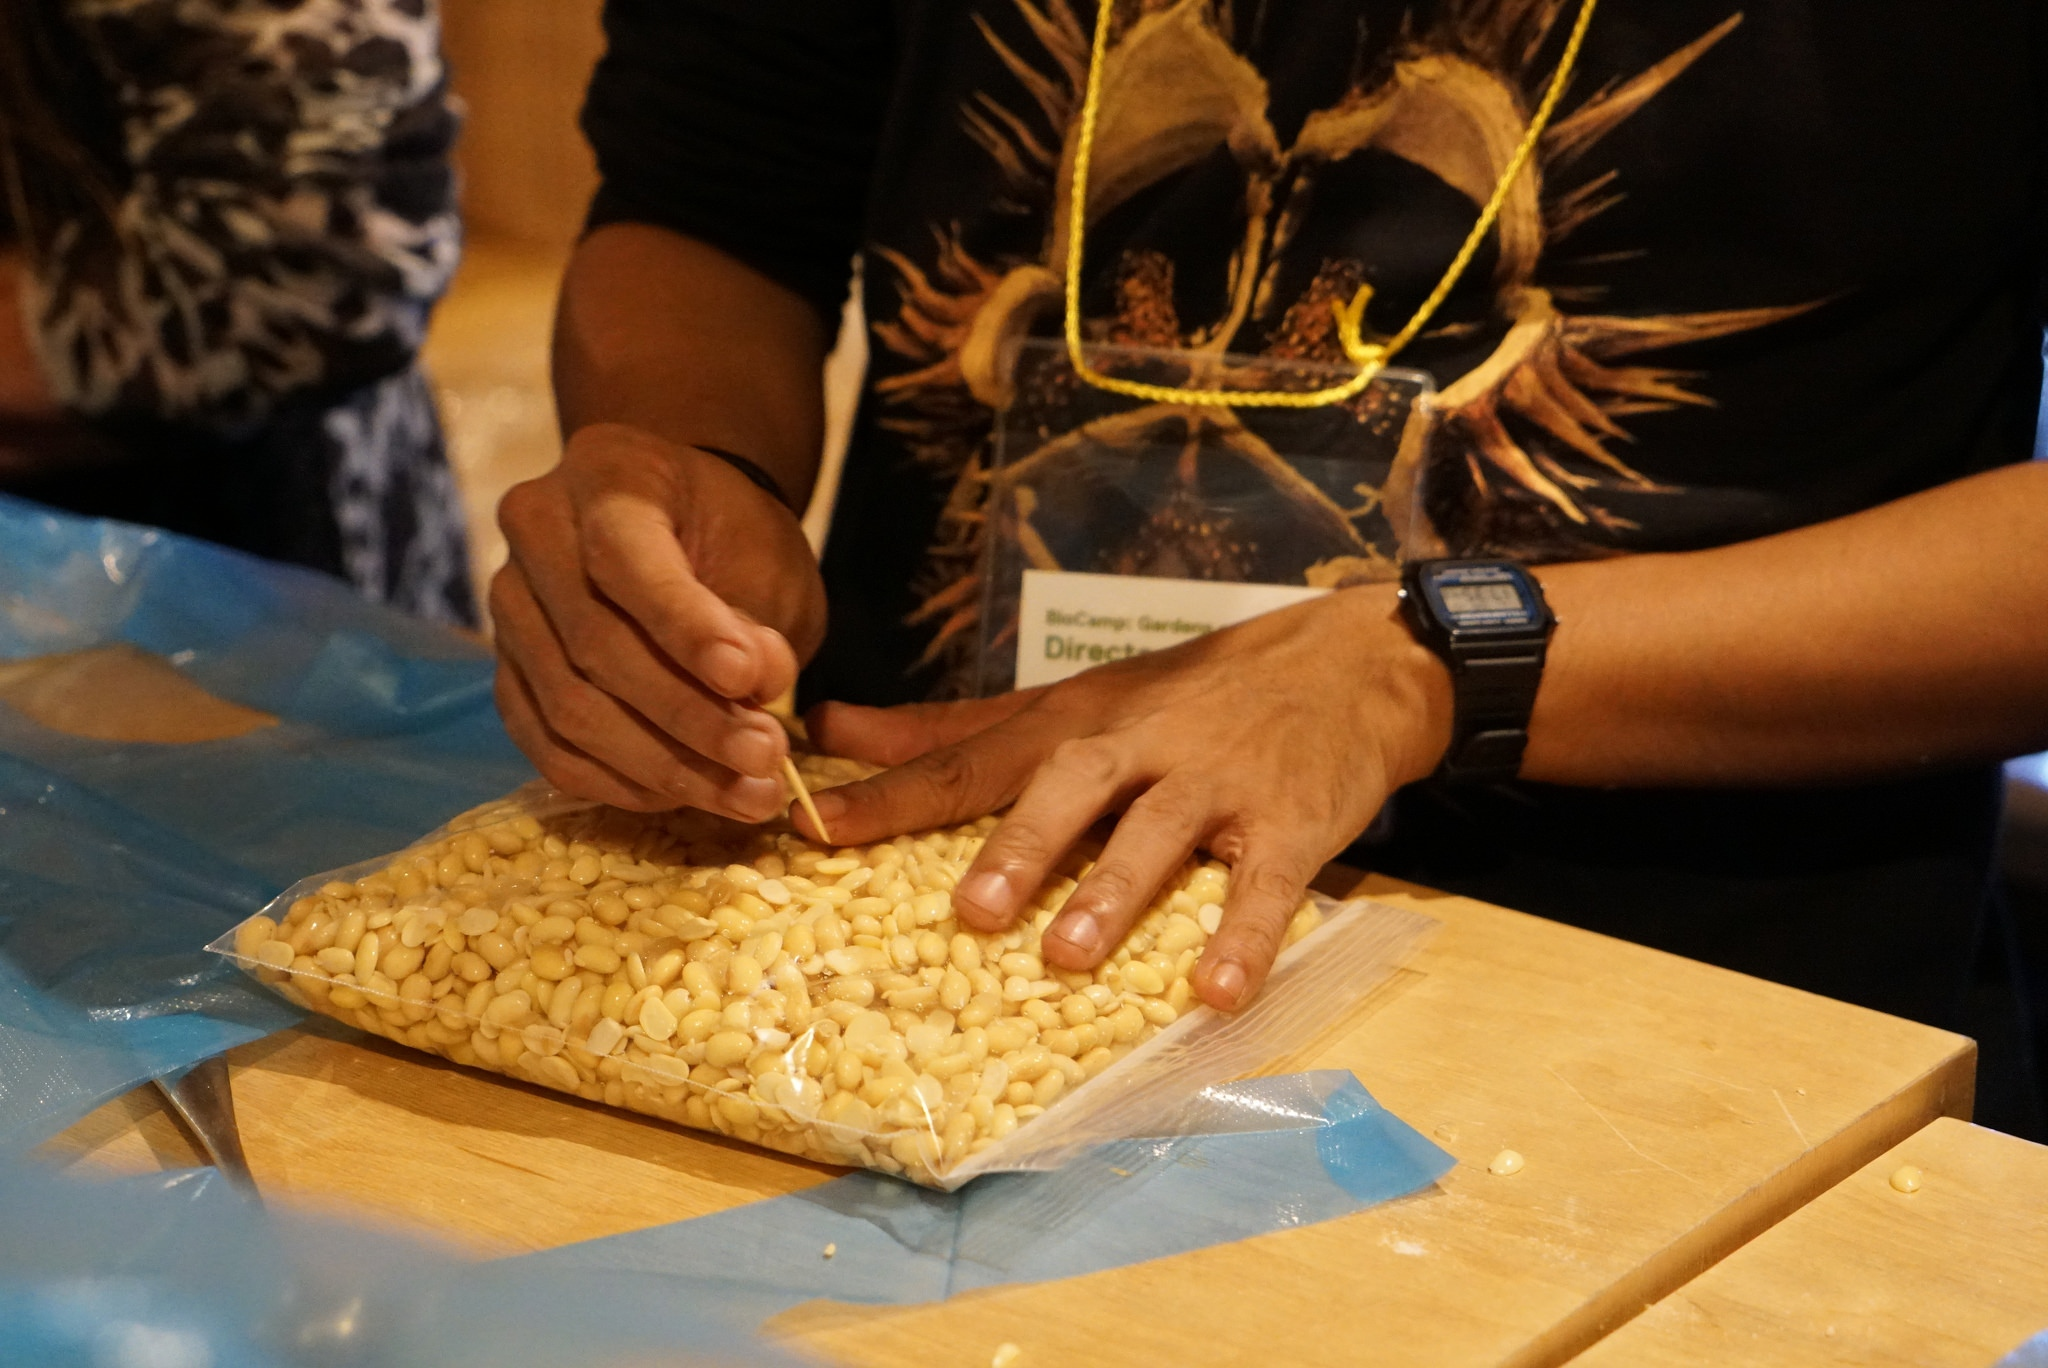 Tempeh Making Workshop by Nur Akbar Arofatullah(Lifepatch)